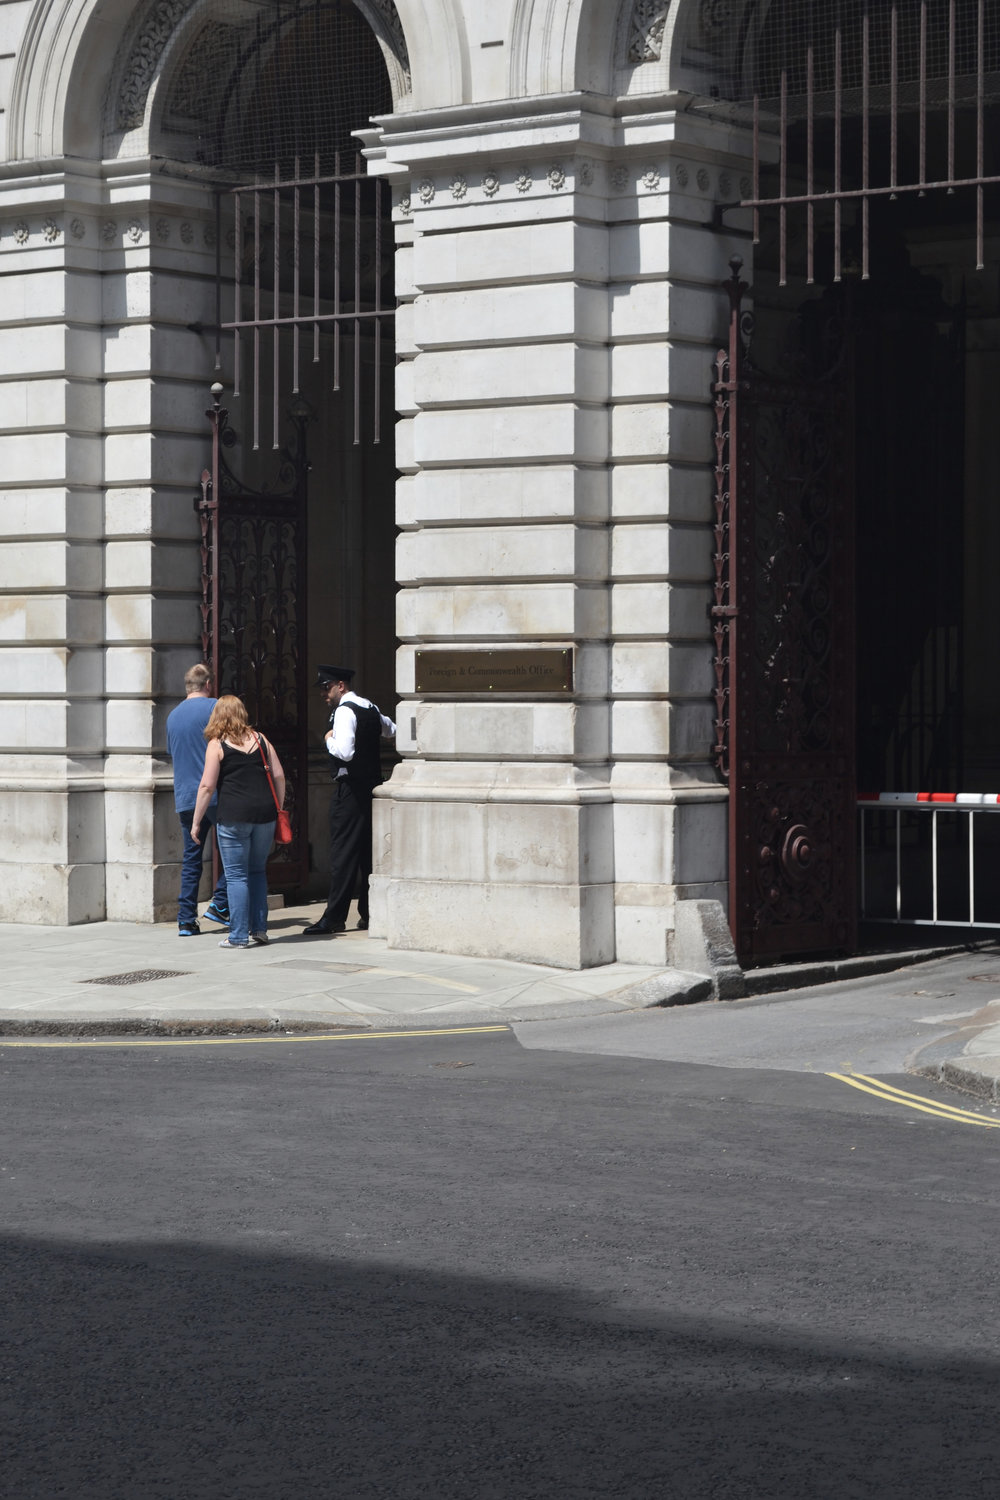 King Charles St entrance to Foreign & Commonwealth Office